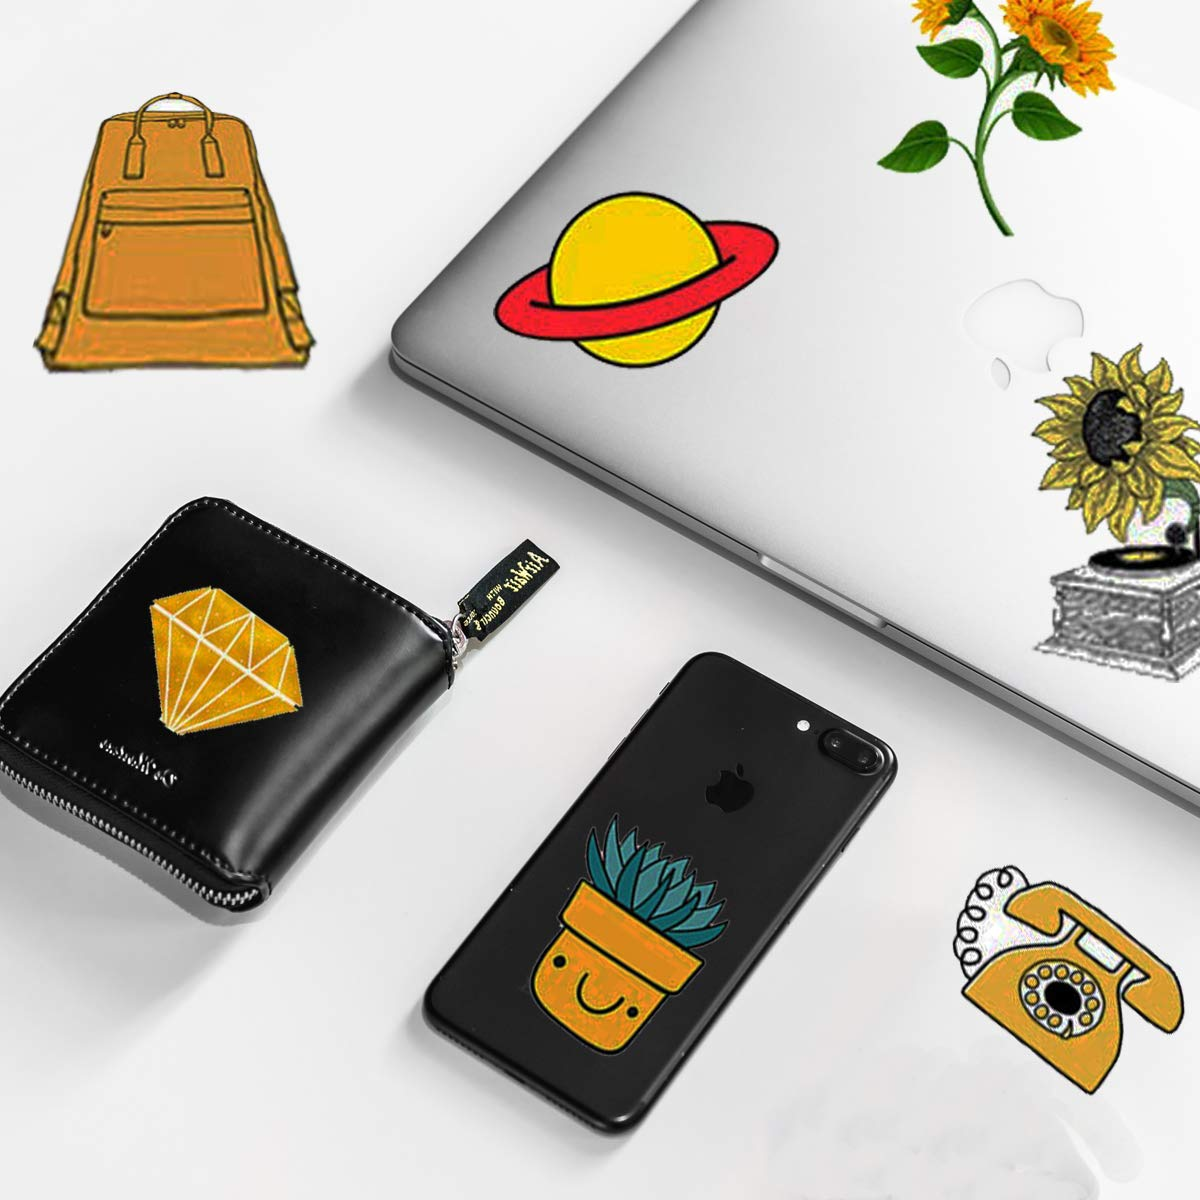 Trendy VSCO Vinyl Stickers for Laptop Water Bottles (50-Pack) Cute Aesthetic Waterproof Stickers for Hydroflask Phone Skateboard Guitar, Suitable for Girls, Kids, Teens, Adults (Yellow Series)